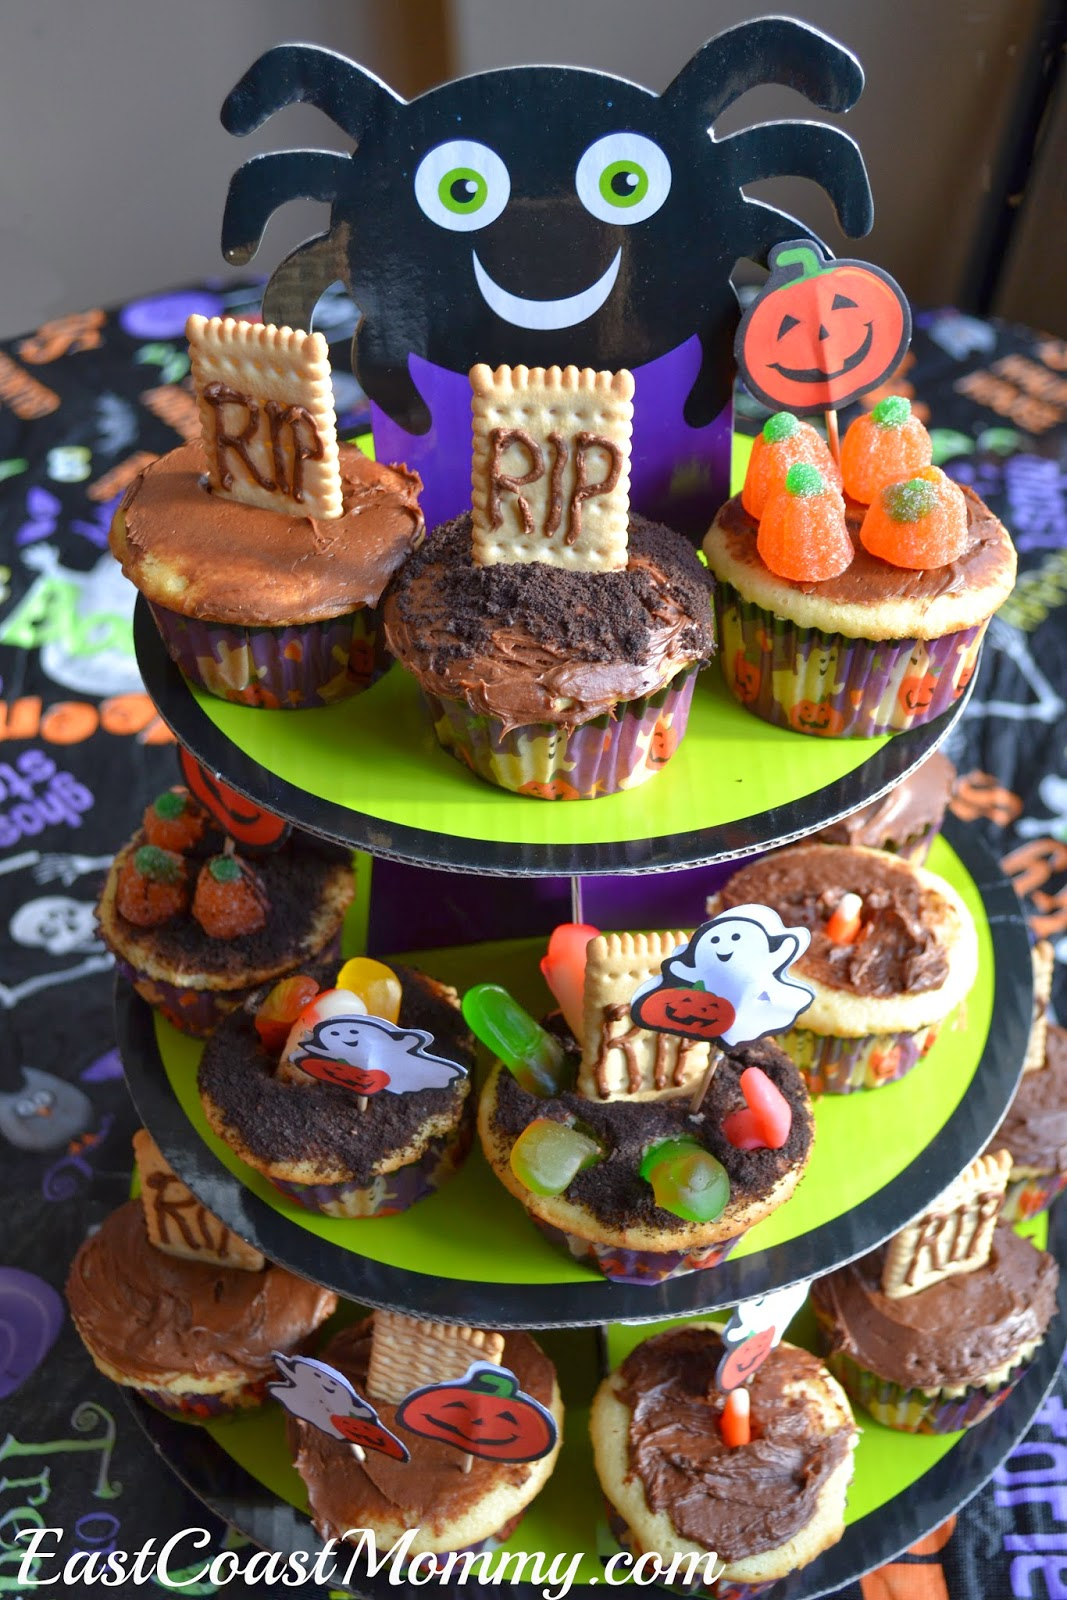 for their creations they used cupcakes icing oreo cookie crumbs candy corn tombstone cookies and gummy fingers